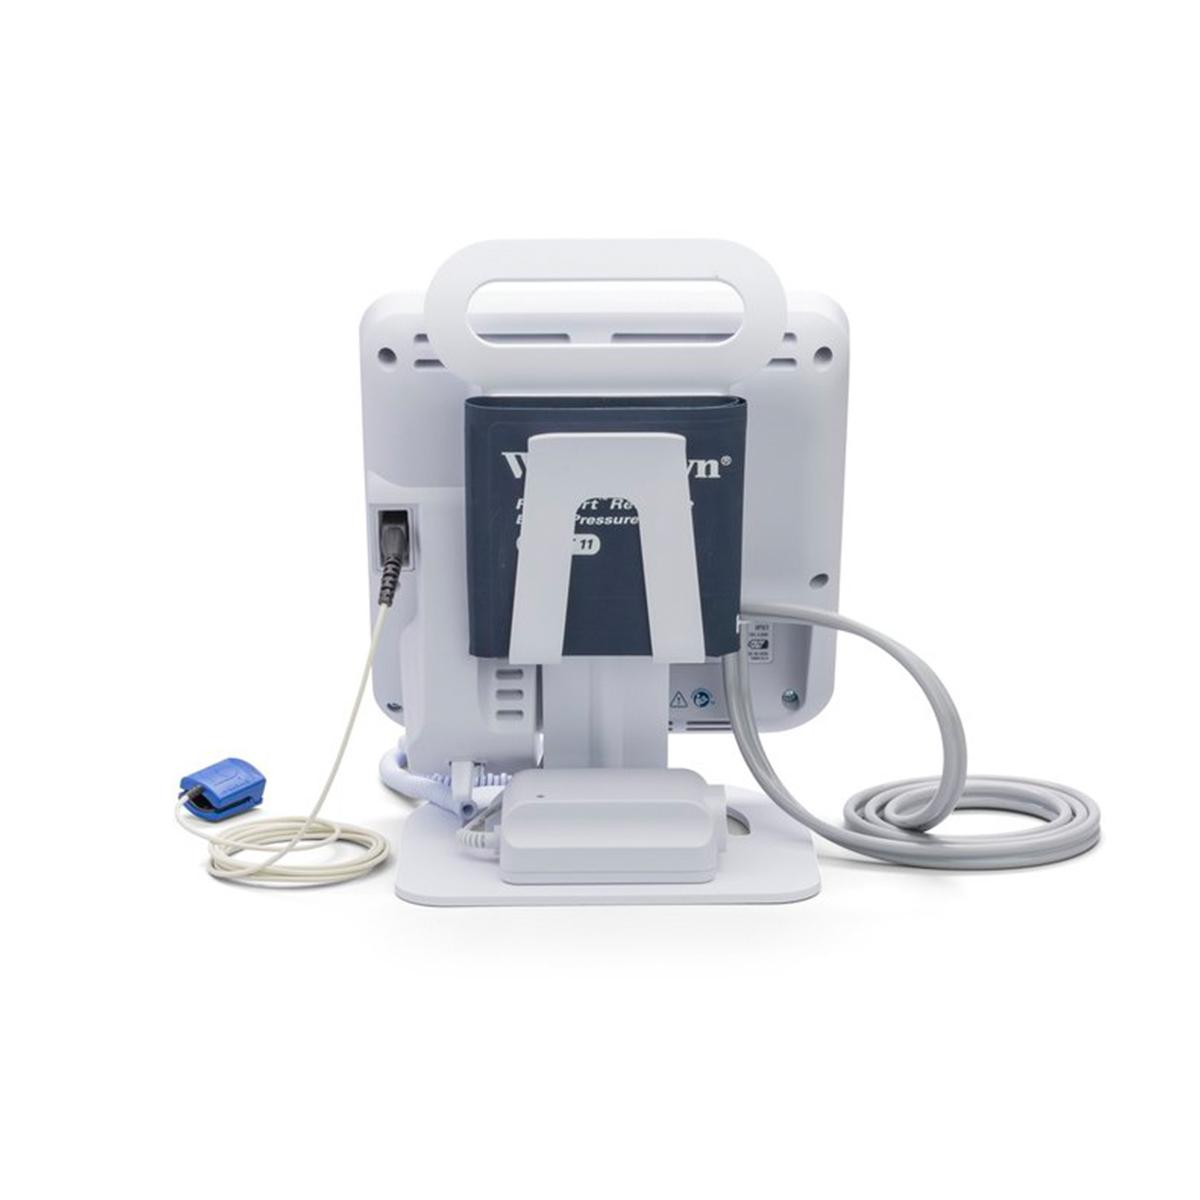 This back view of the Spot Vital Signs® 4400 Device shows the pulse oximeter connection port and blood pressure cuff holder built into the desktop stand.